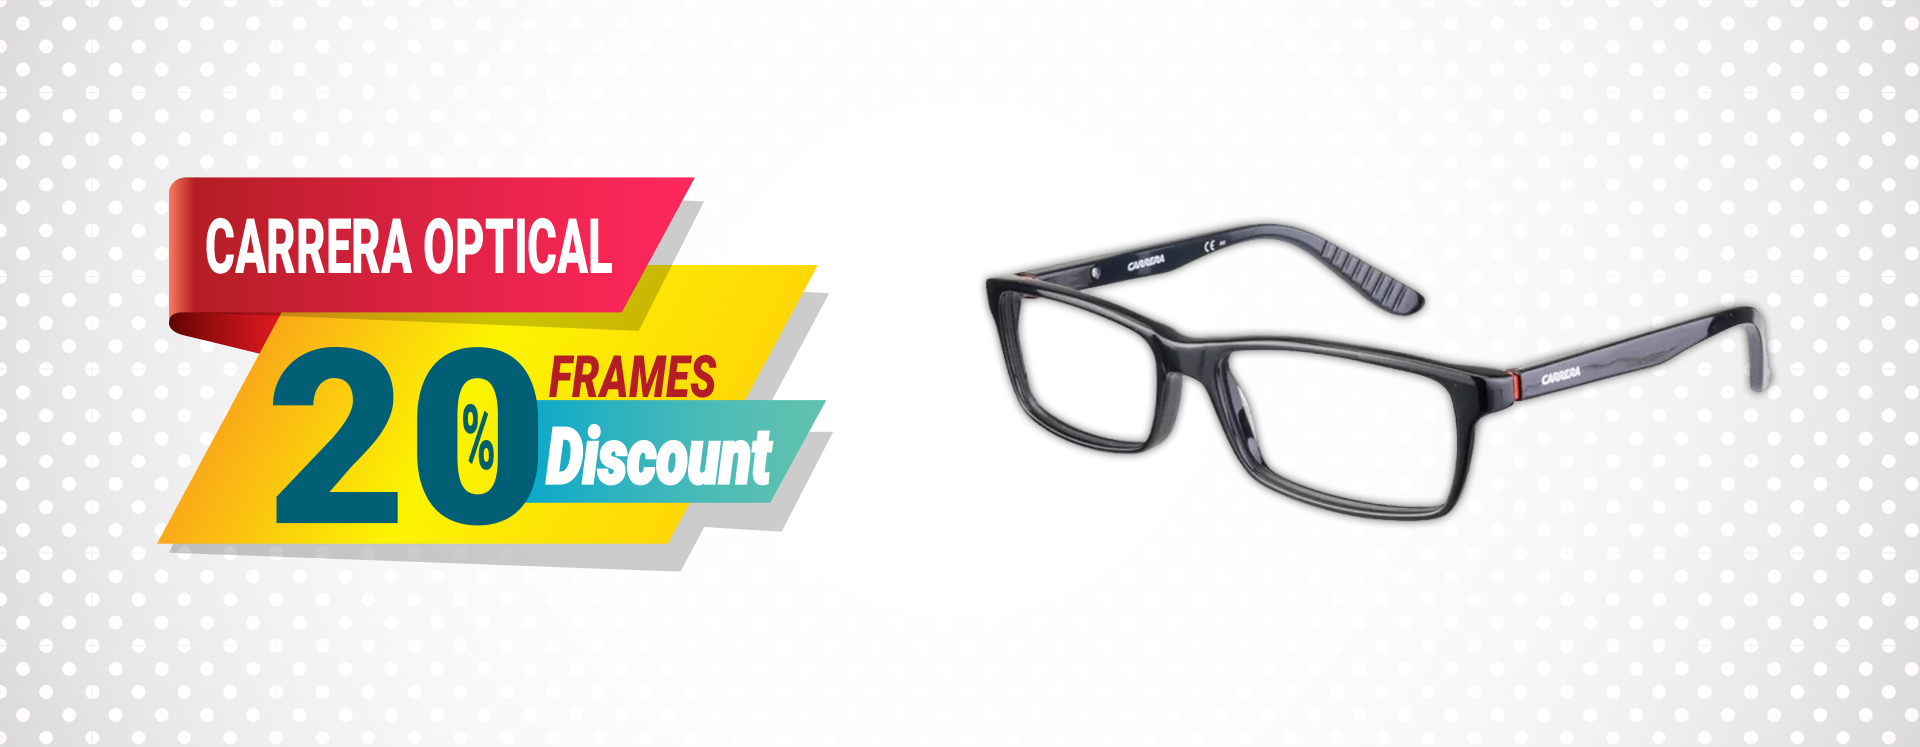 Carrera Optical frames Less 20% (Less 20%)